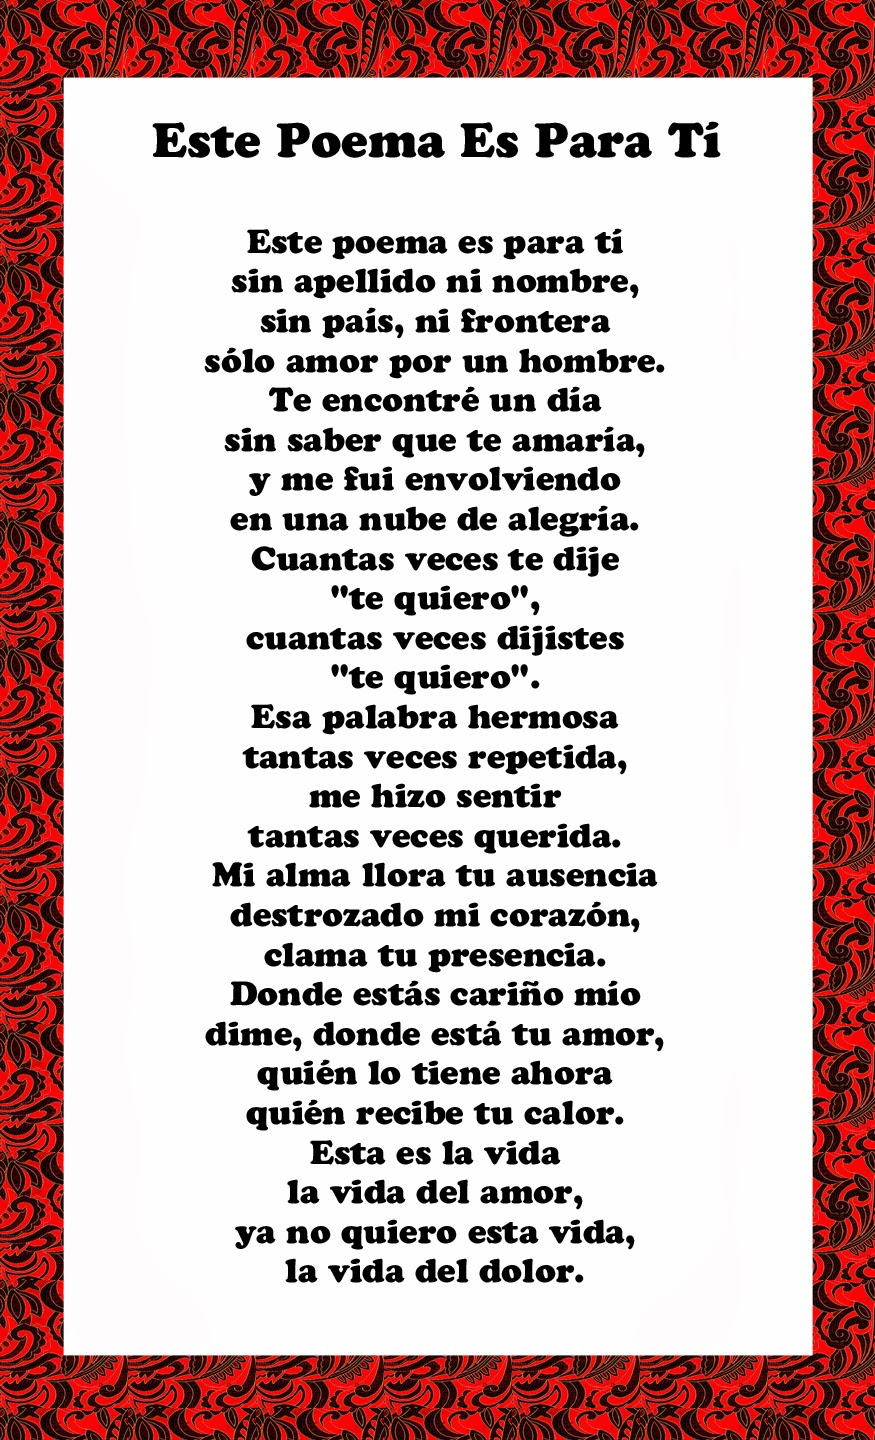 Spanish Love Quotes And Poems For Him Her: Love Poem Xiv Spanish